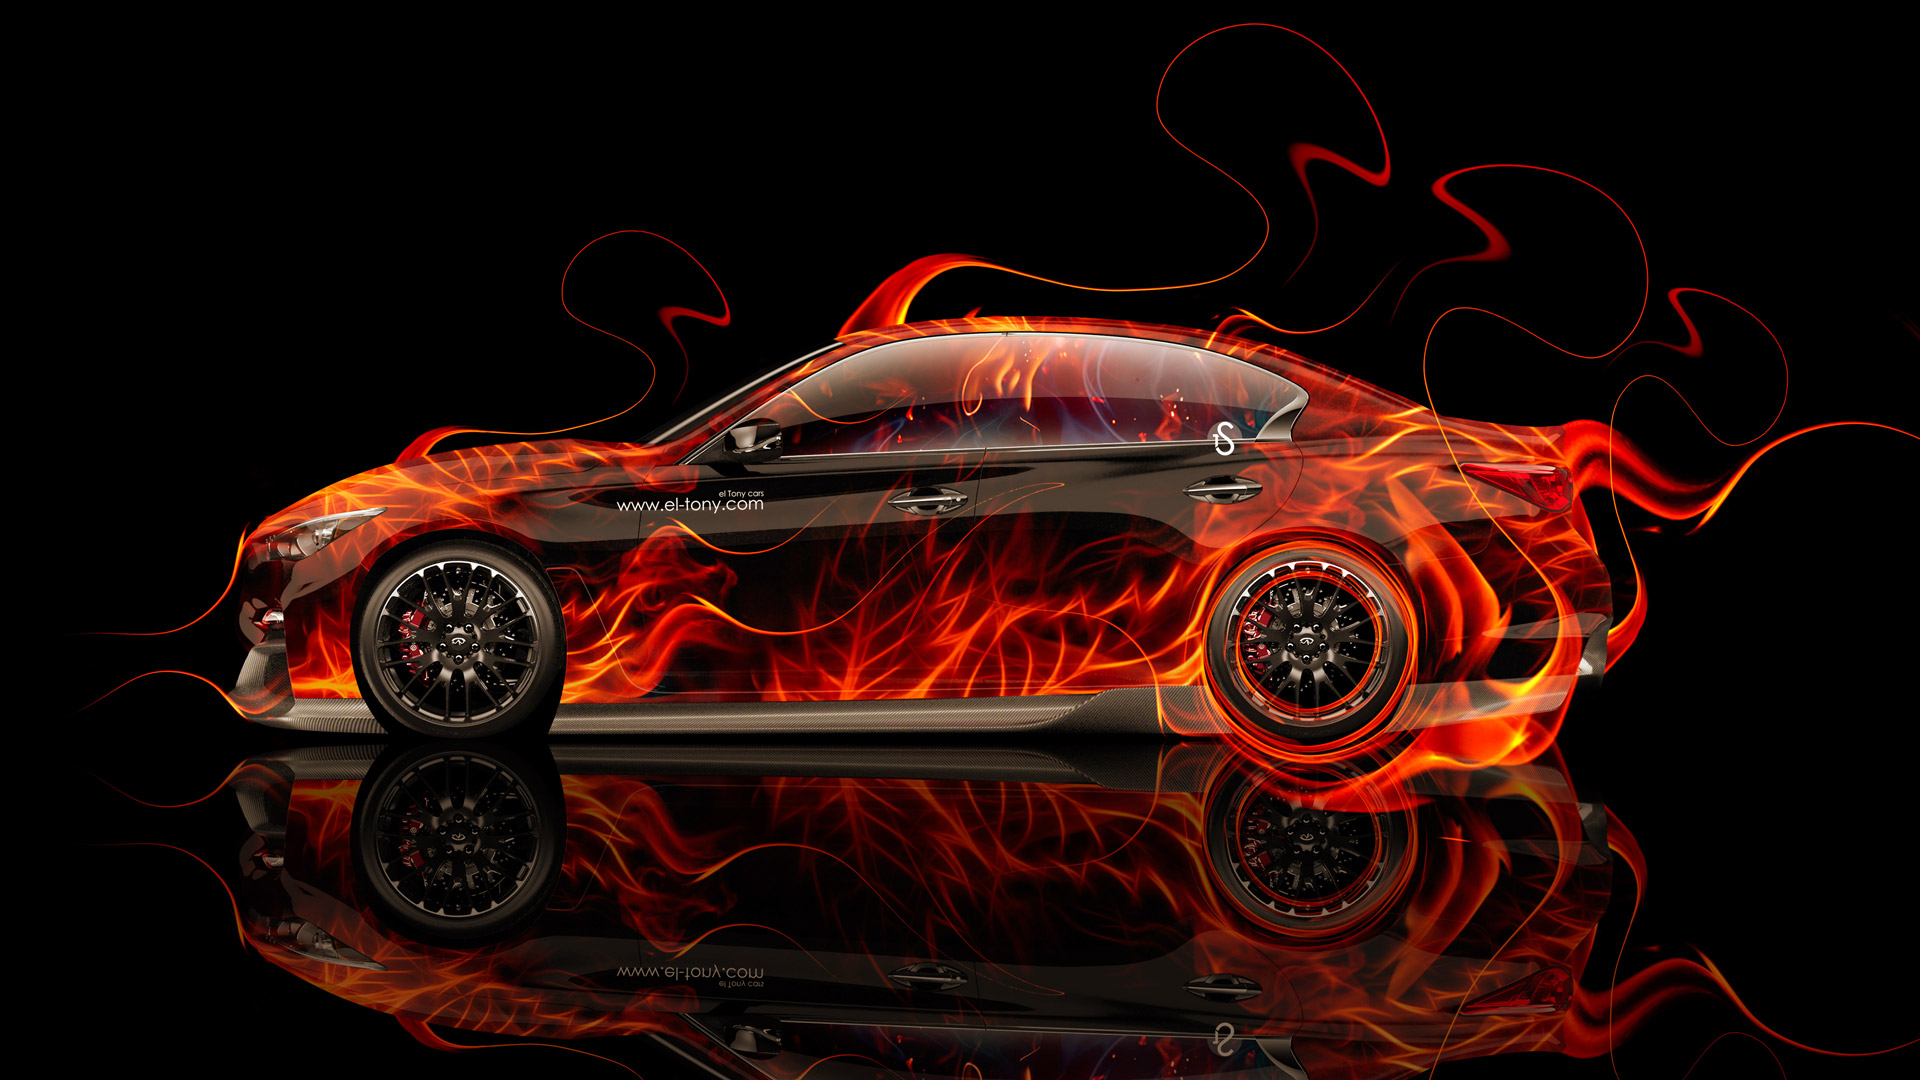 Infiniti Q50 Side Fire Abstract Car 2014 HD